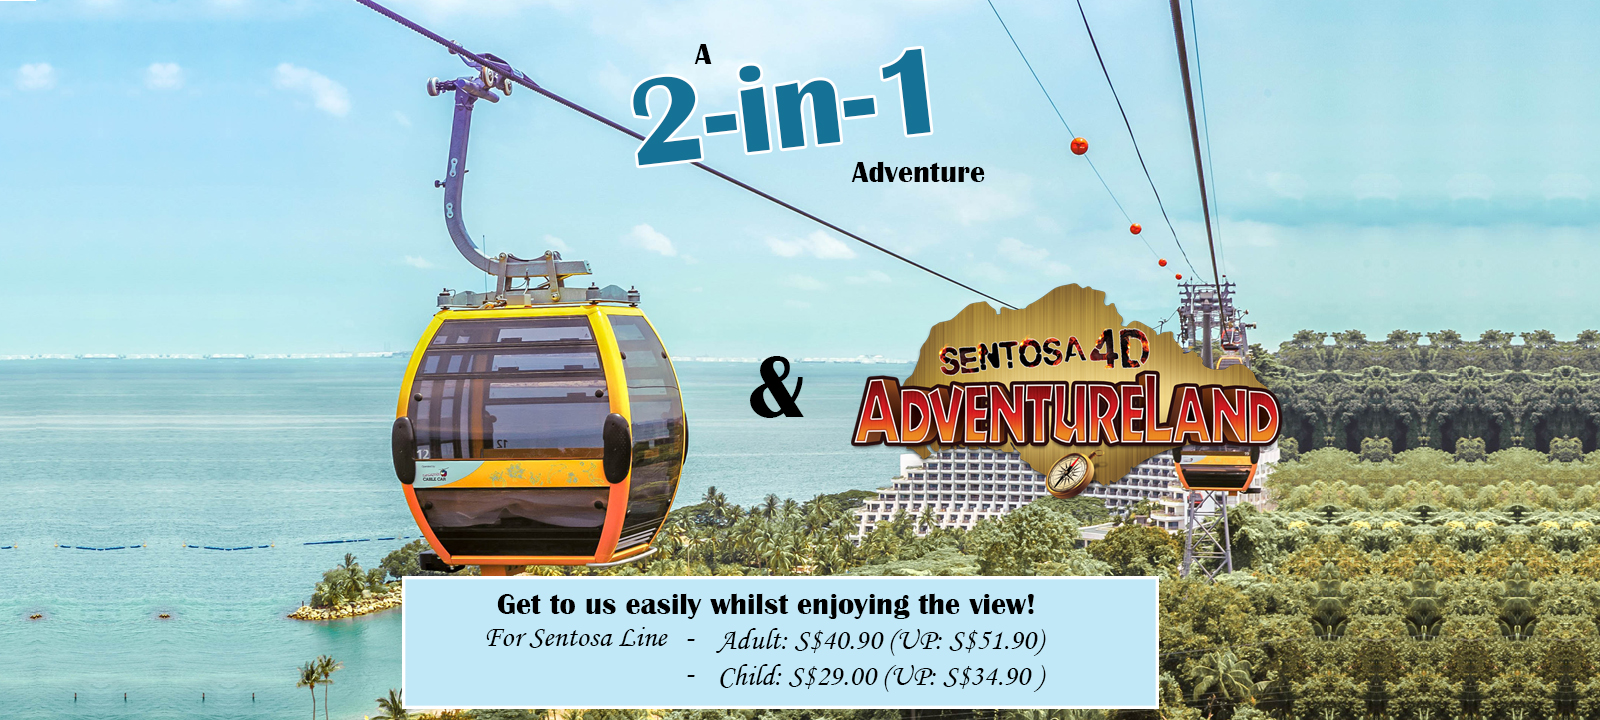 Extreme long cable car 2-in-1 offer top adventure park singapore 4d adventureland